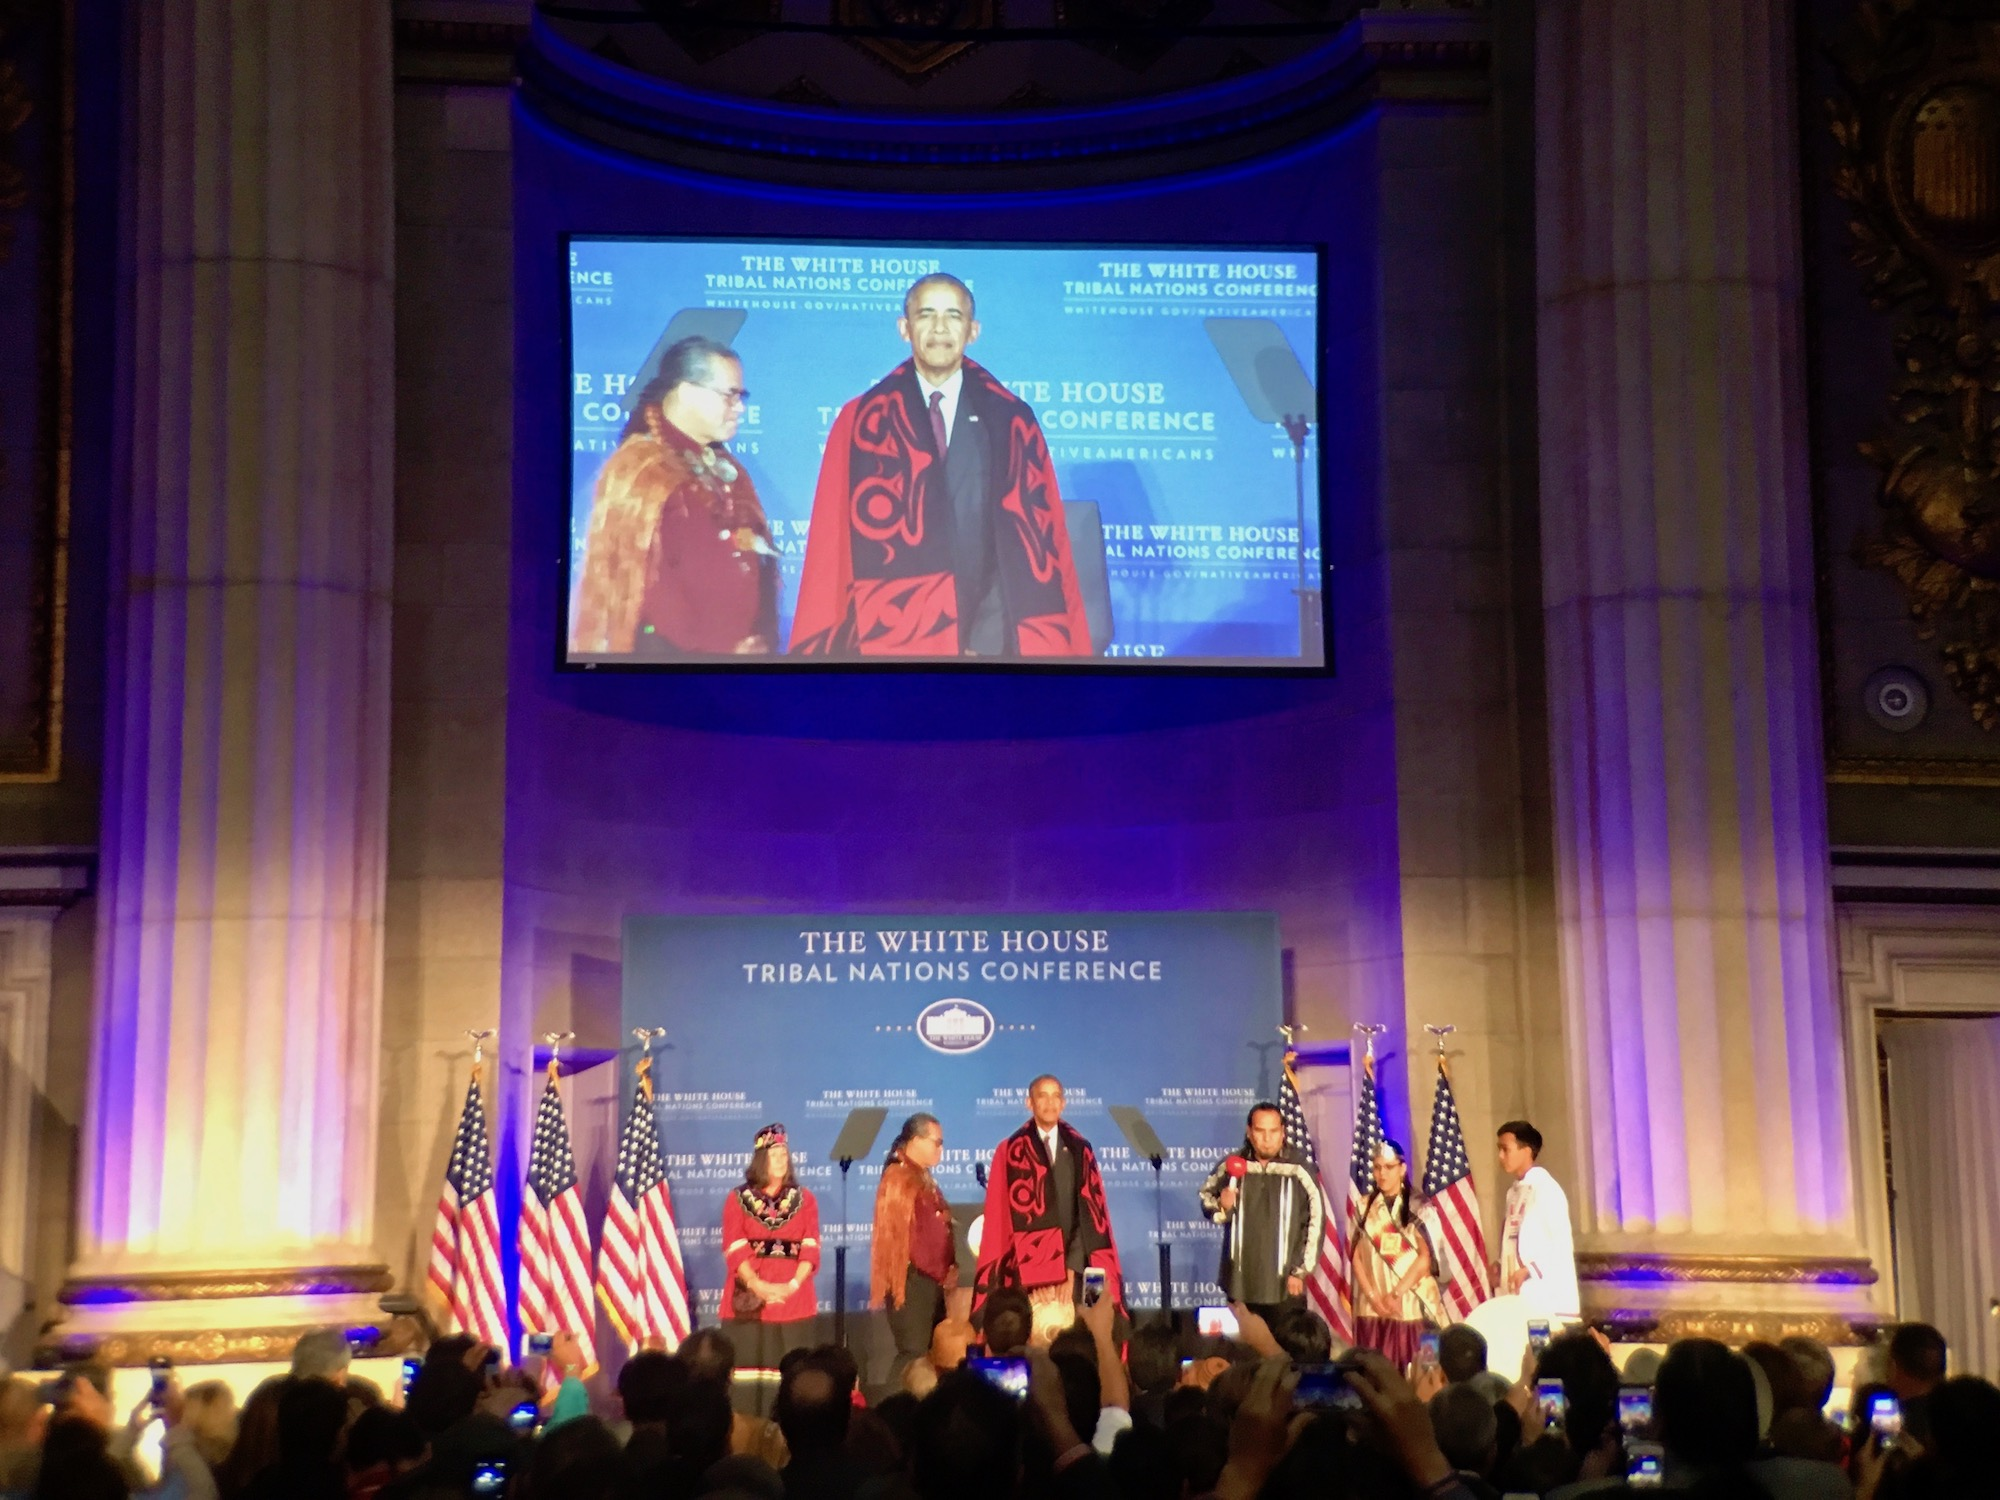 President Barack Obama at White House Tribal Nations Conference